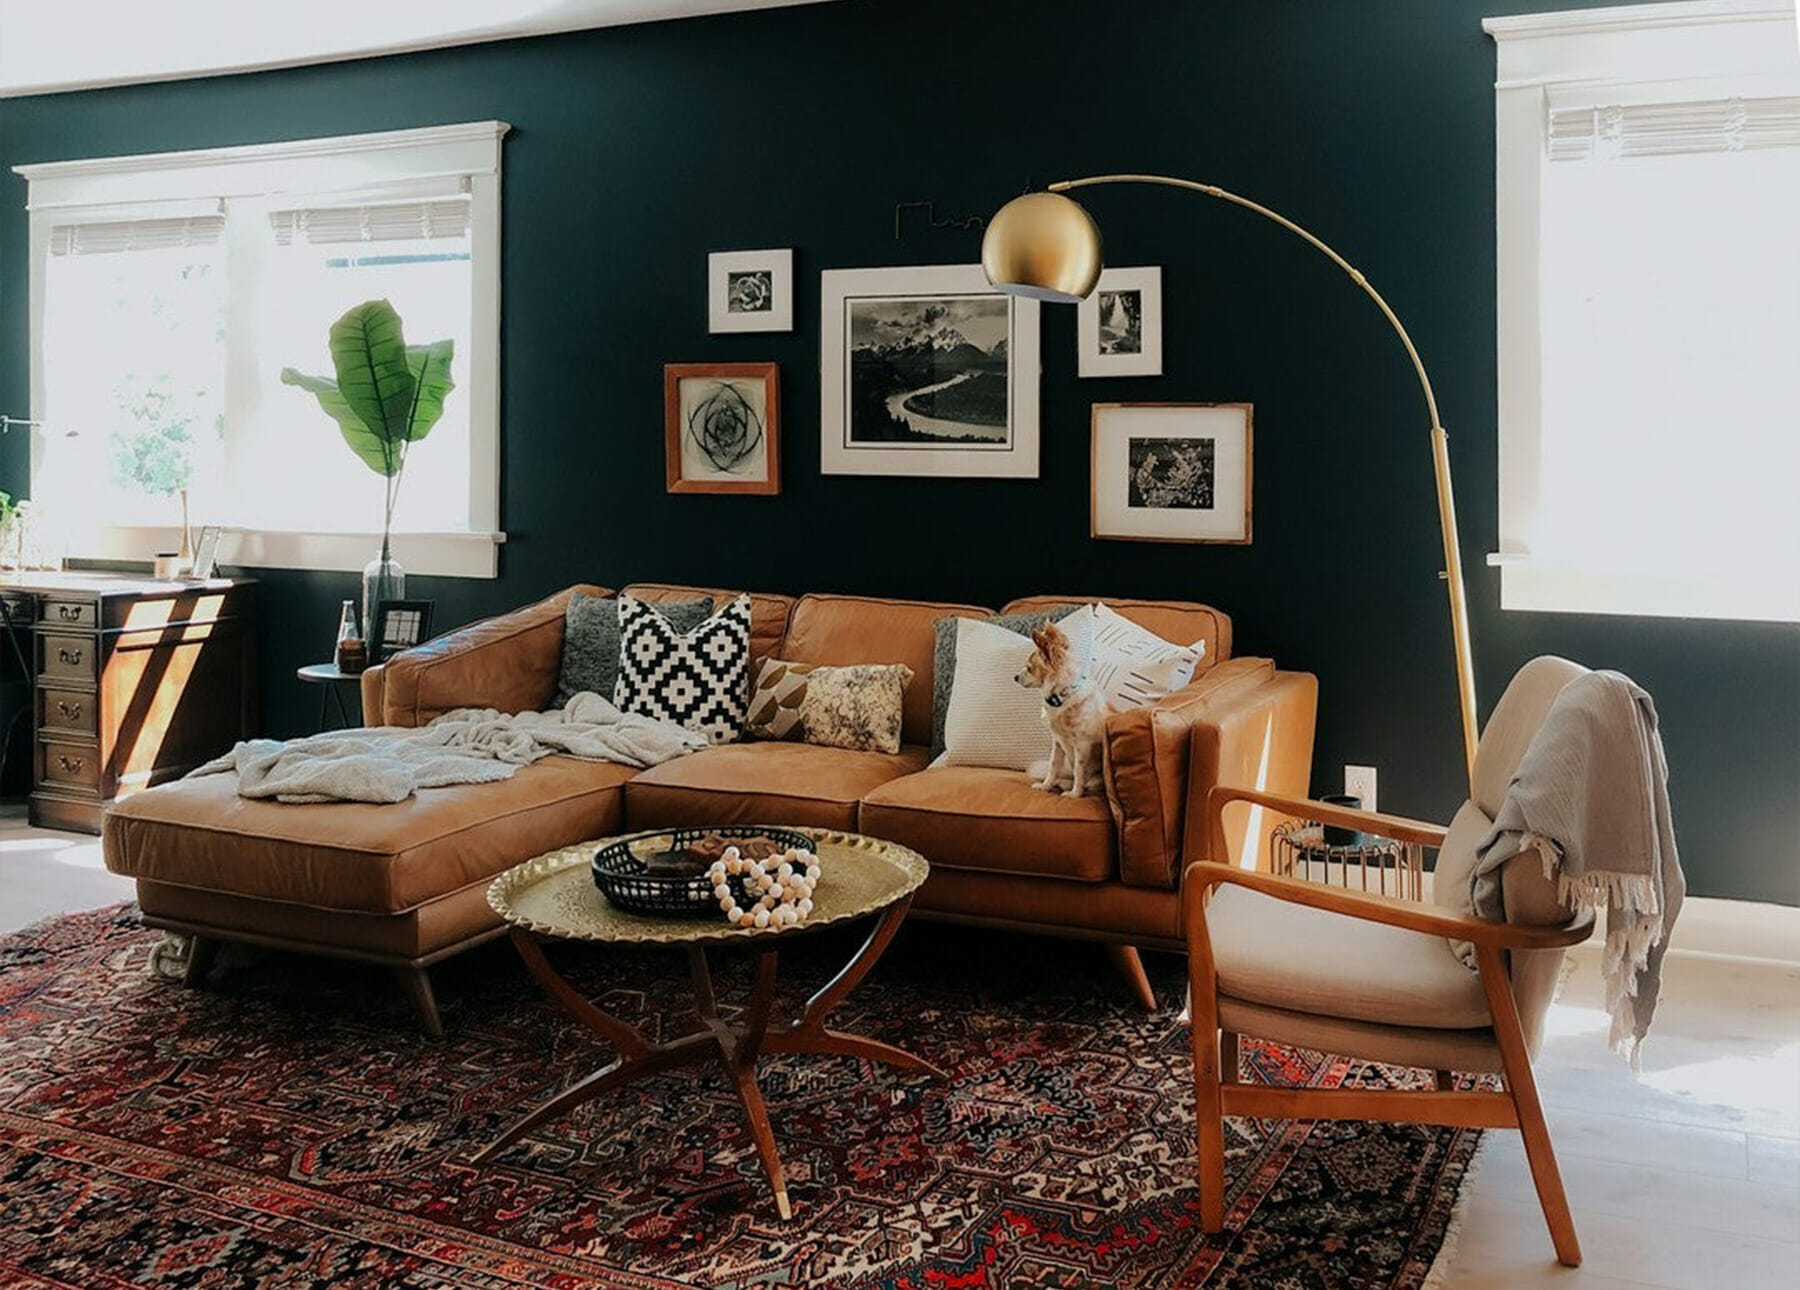 The leather Timber Sectional is styled in a dark green painted room.